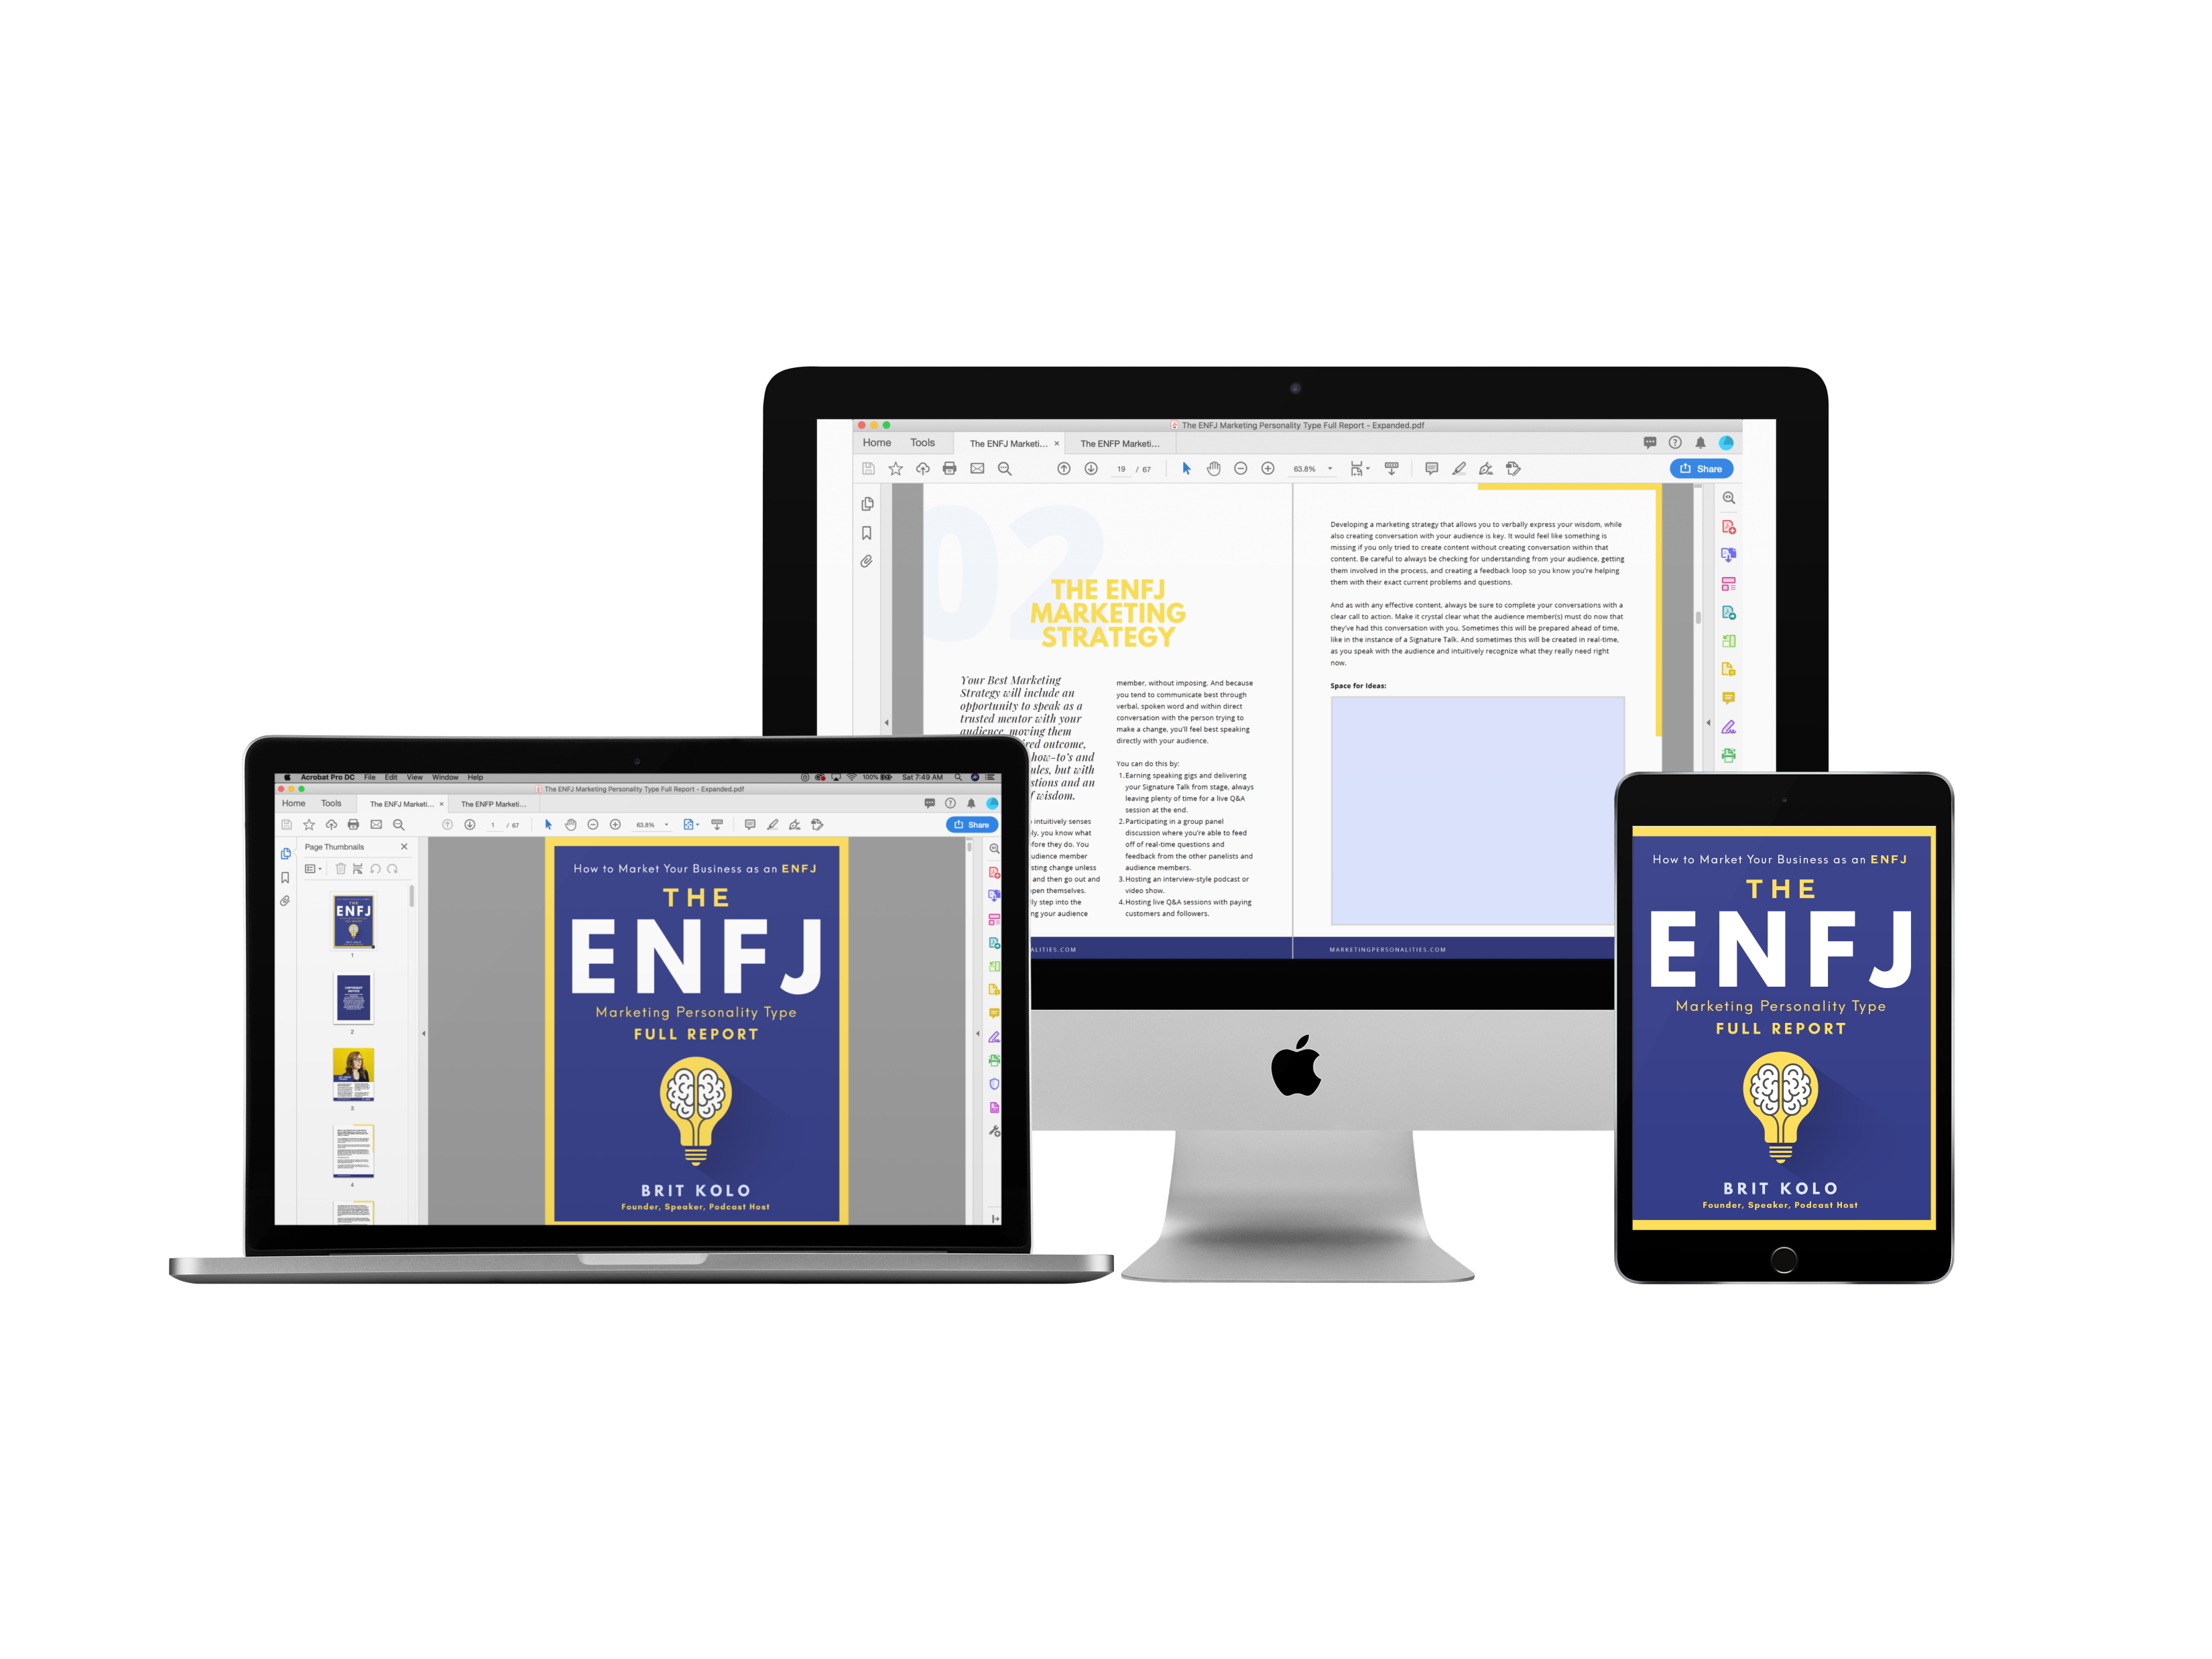 ENFJ Marketing Personality Type Full Report Product